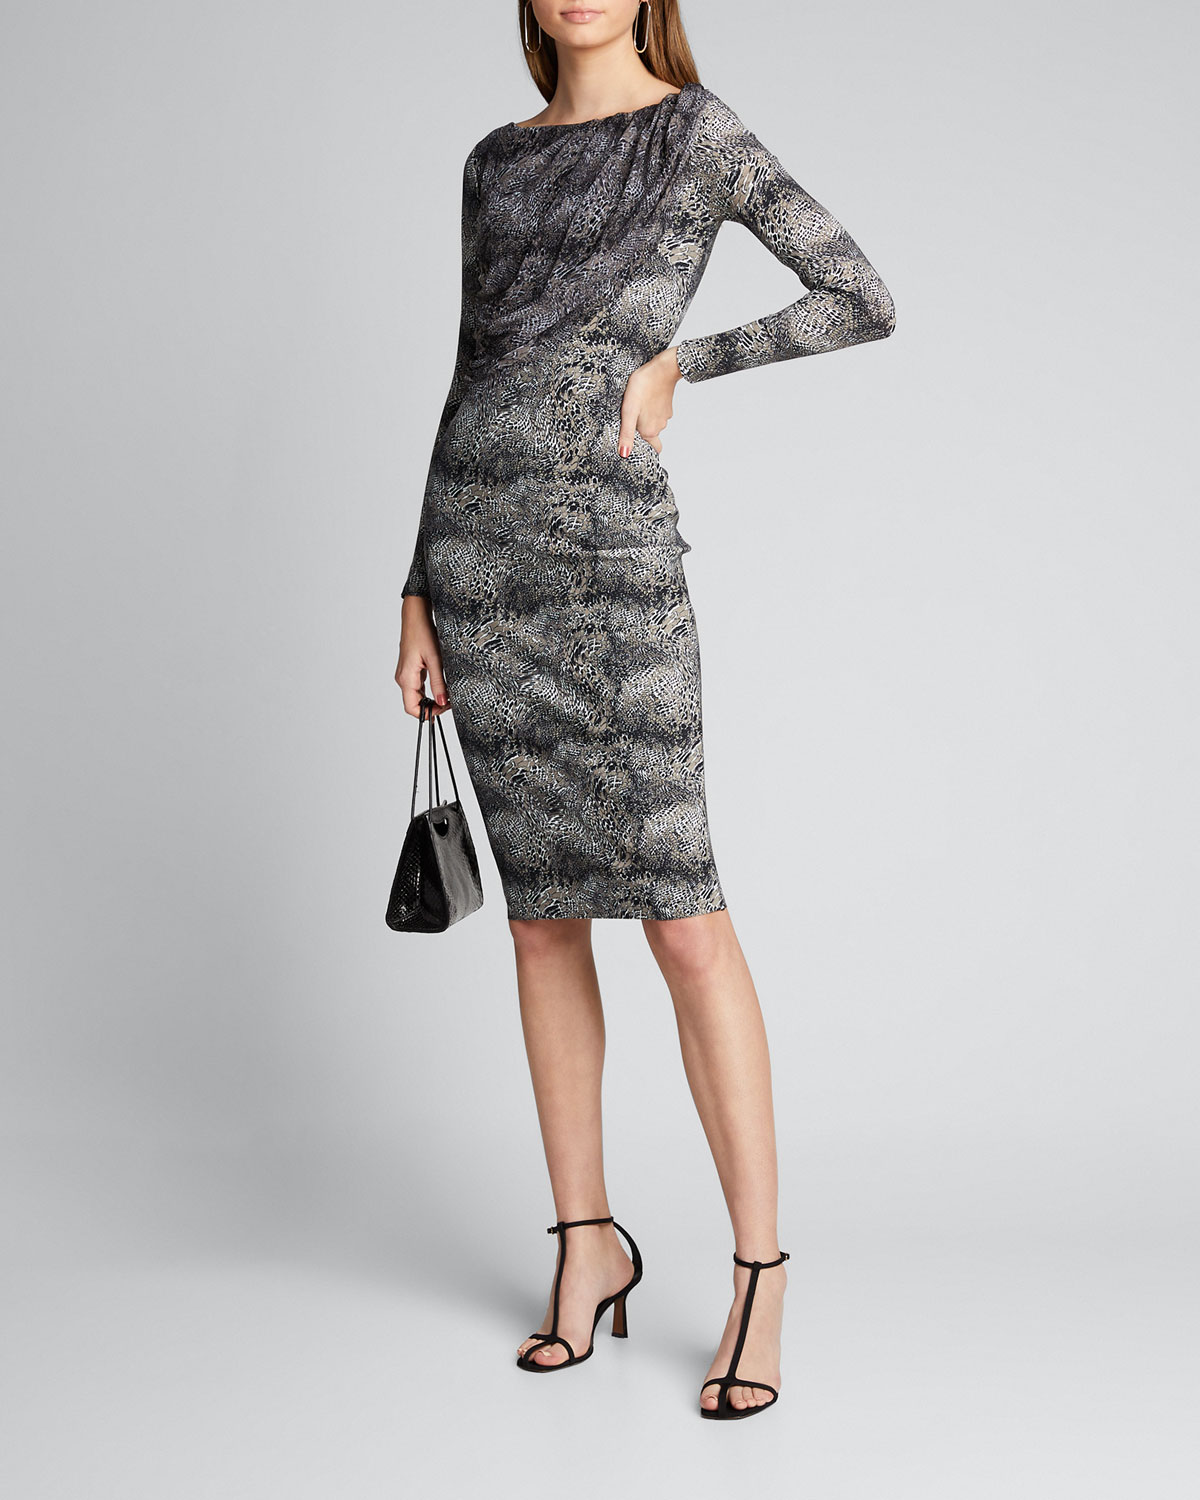 Chiara Boni La Petite Robe Dresses SNAKE-PRINT LONG-SLEEVE DRESS WITH SHEER BODICE OVERLAY